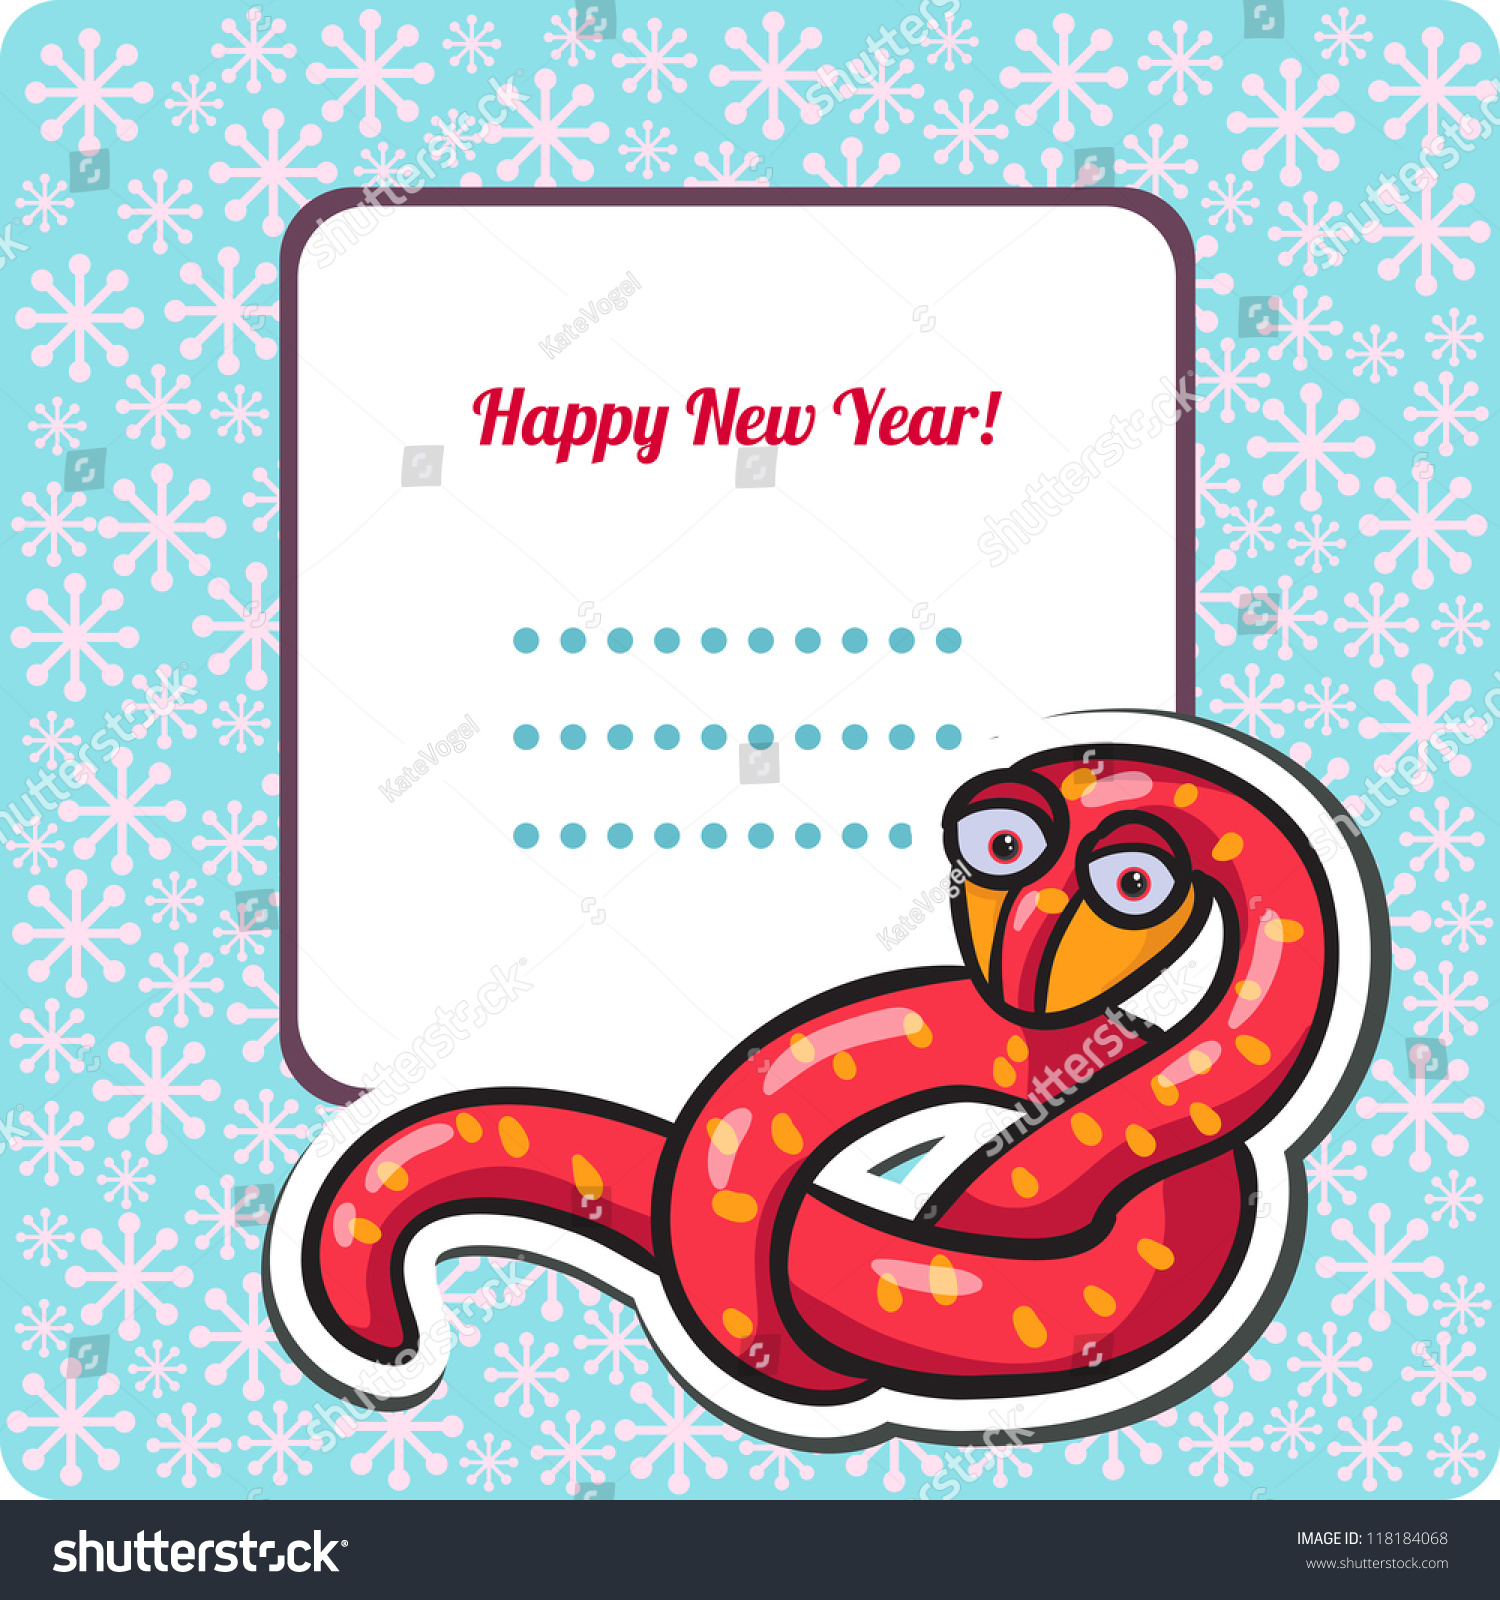 Funny new years eve greeting card stock vector 118184068 shutterstock funny new years eve greeting card with snake happy new year illustration year of m4hsunfo